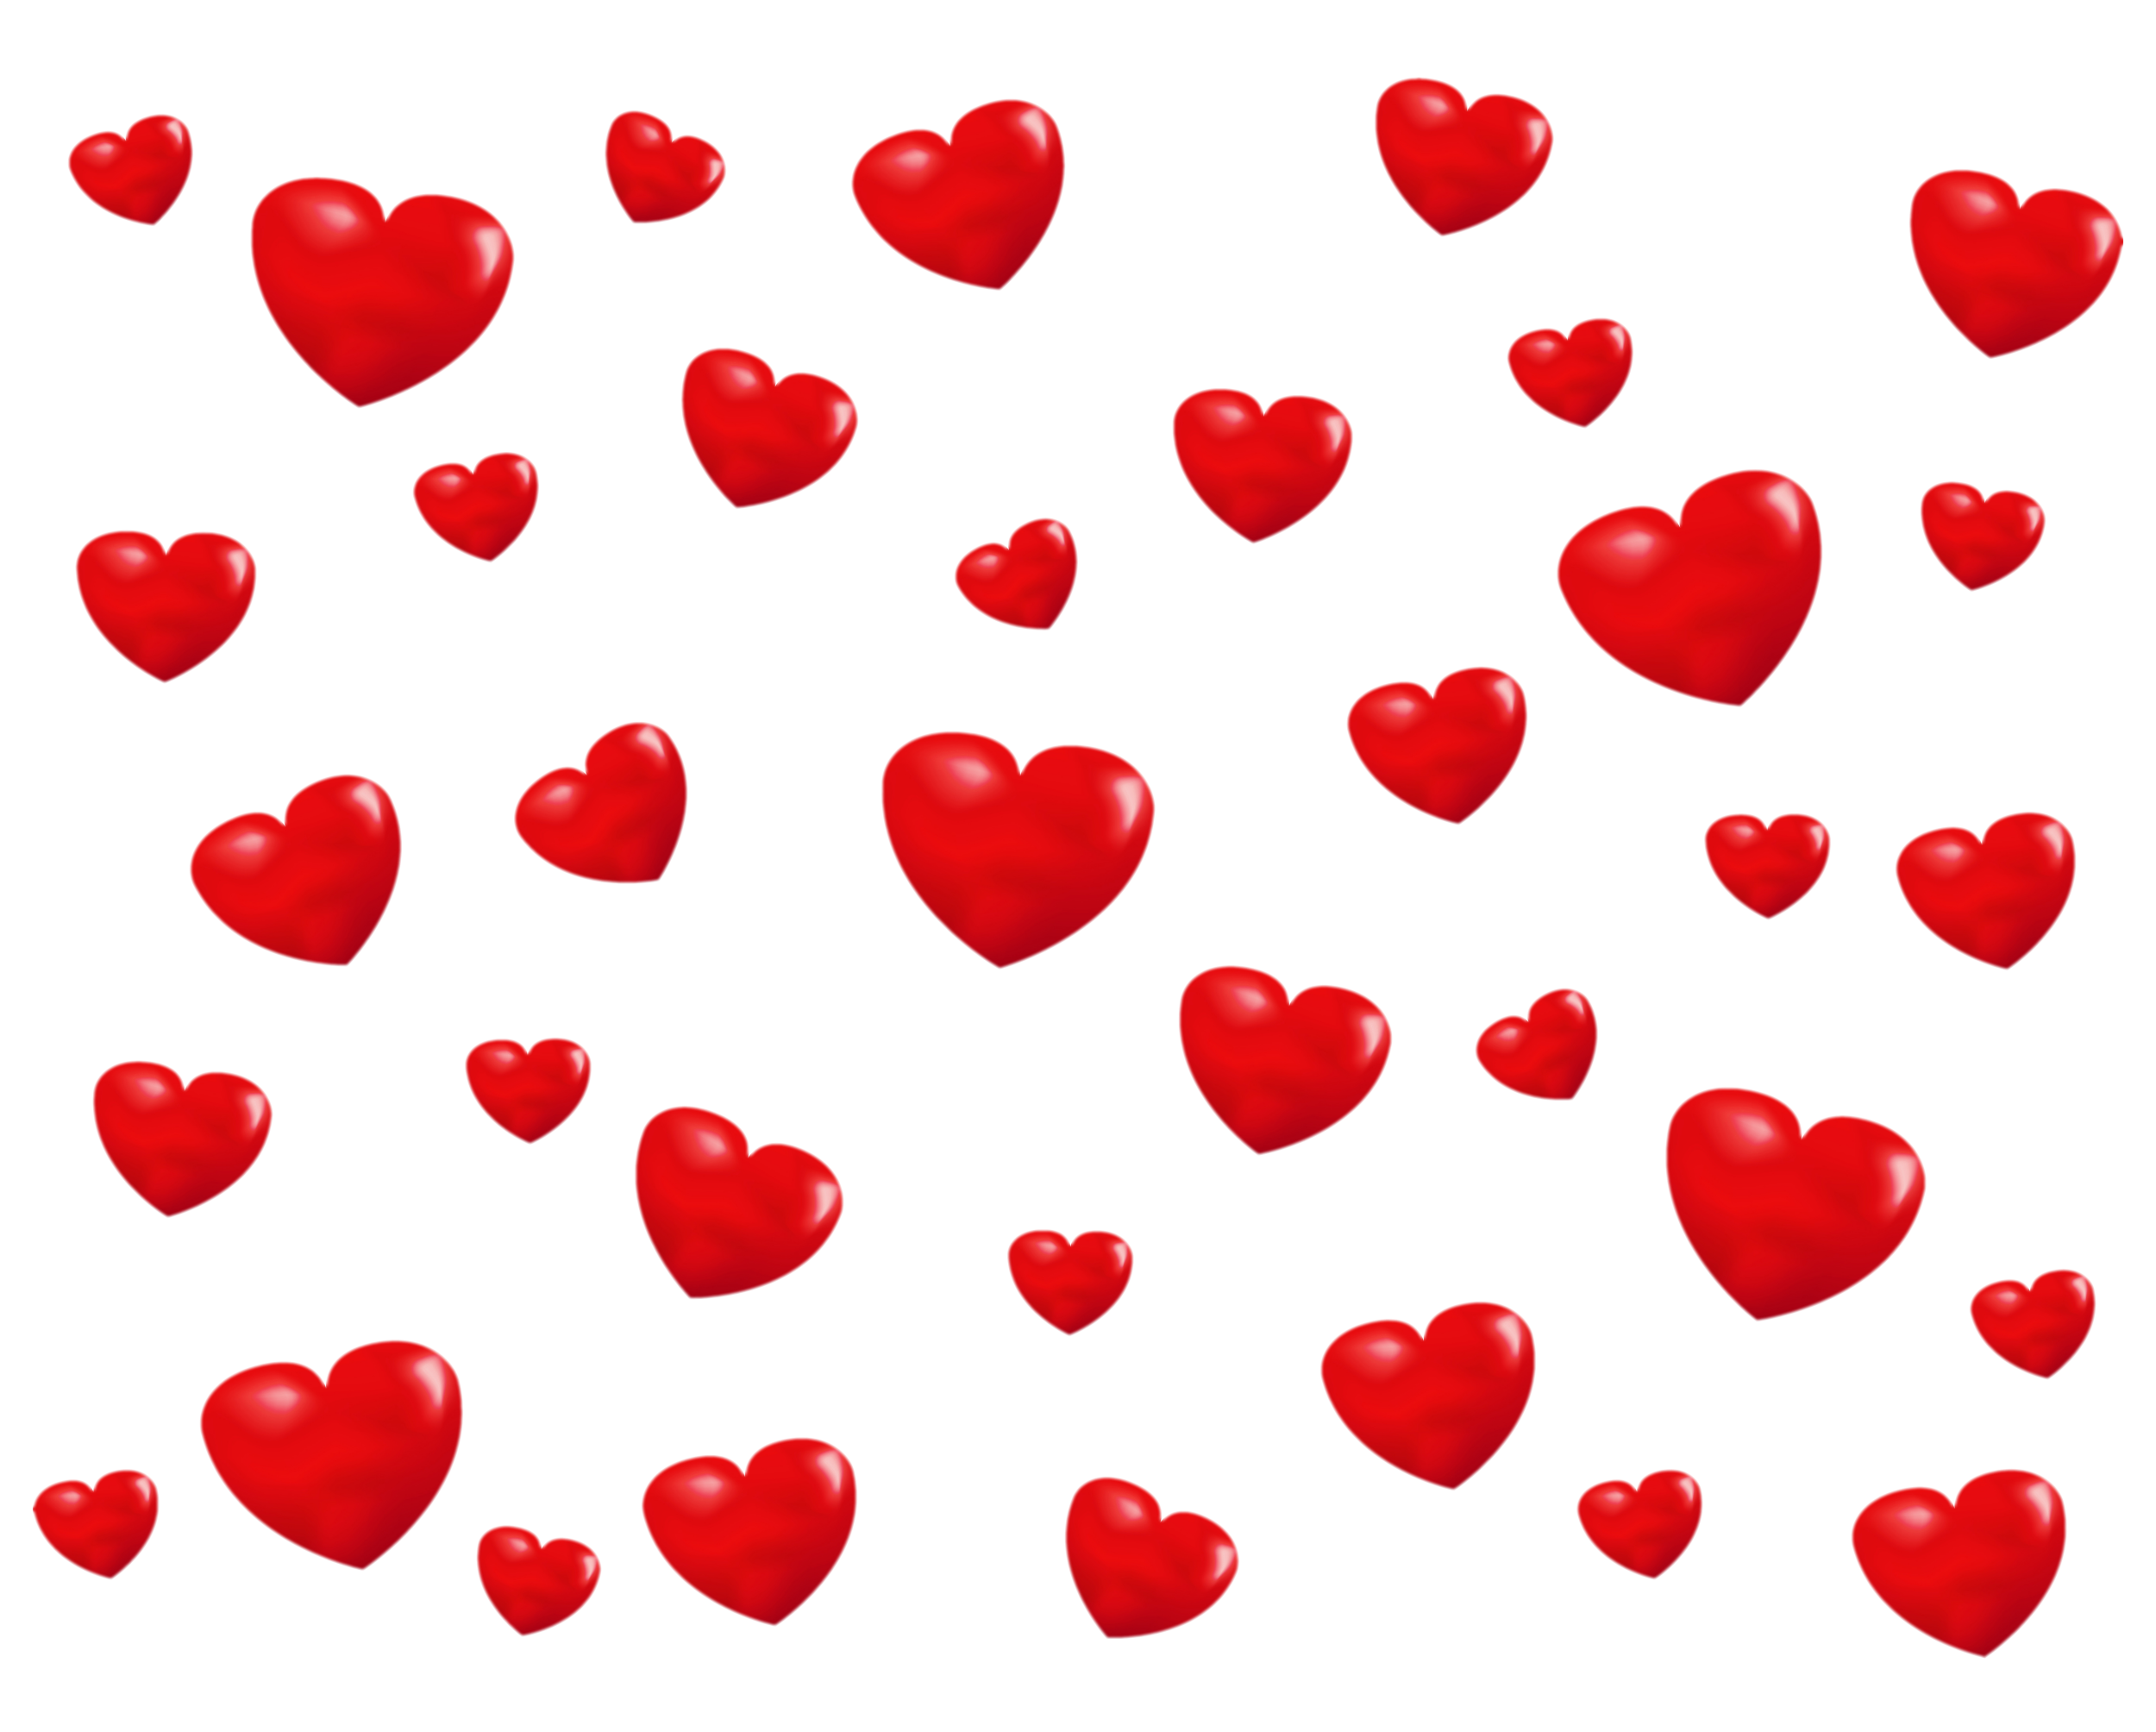 Transparent PNG Background with Hearts.